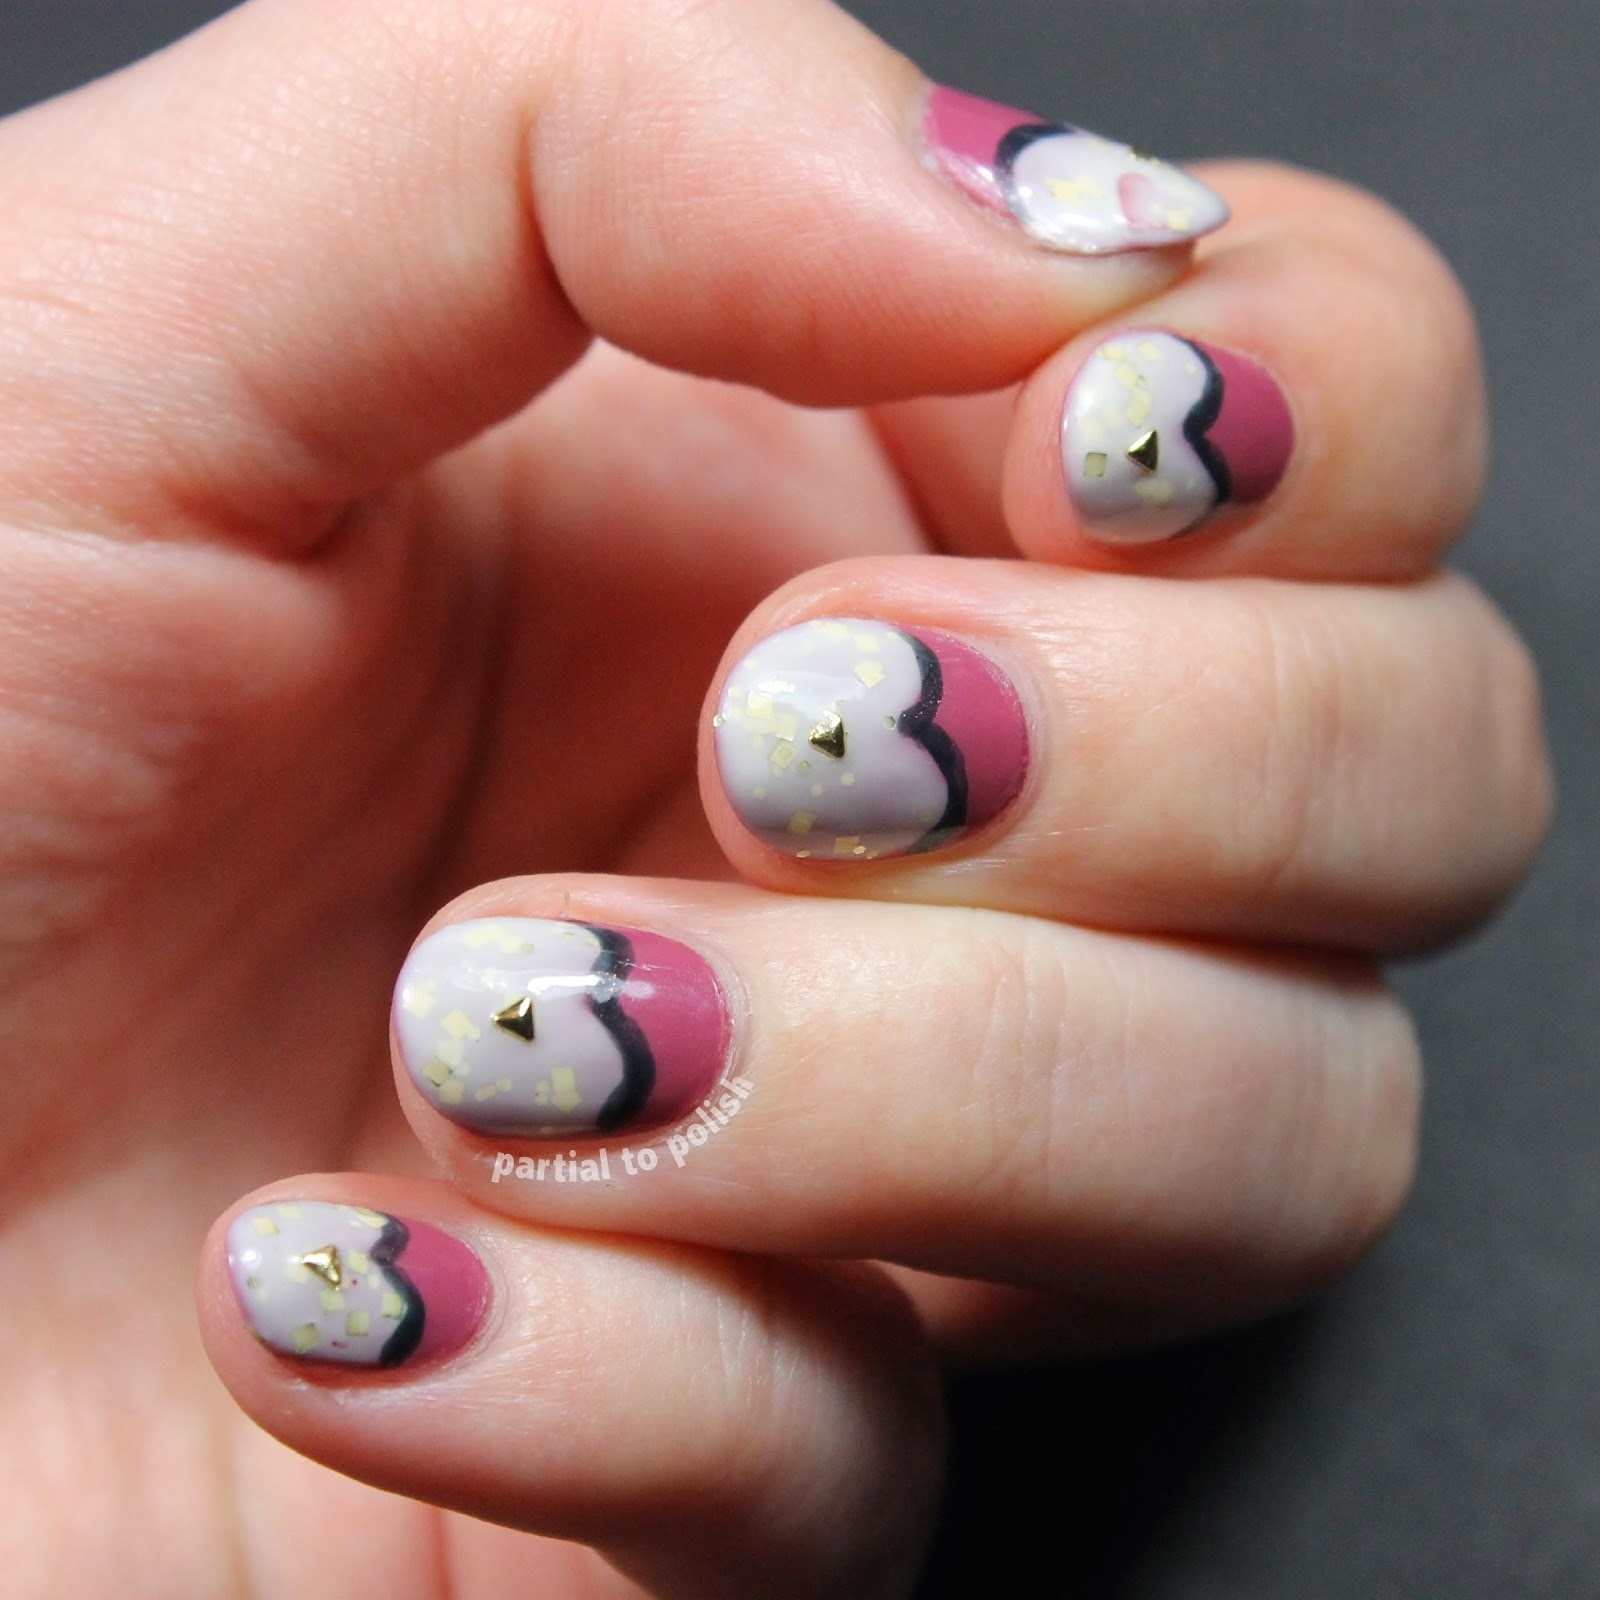 Half Moon Heart Nail Art Featuring Tiny Triangle Studs and a Born Pretty Store Review